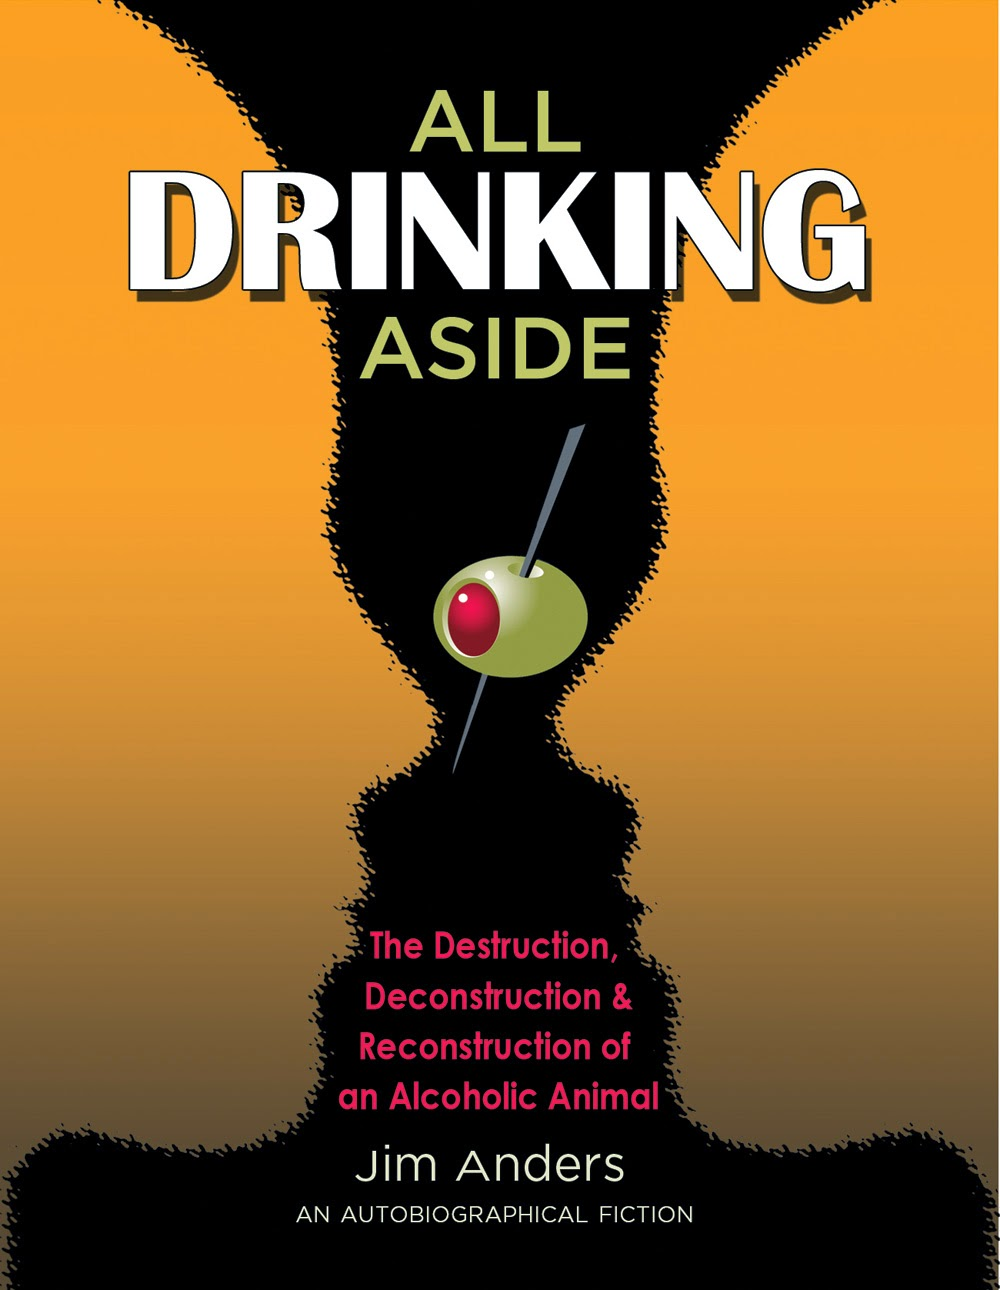 http://www.amazon.com/All-Drinking-Aside-Deconstruction-Reconstruction/dp/149239730X/ref=sr_1_1?ie=UTF8&qid=1383714712&sr=8-1&keywords=all+drinking+aside